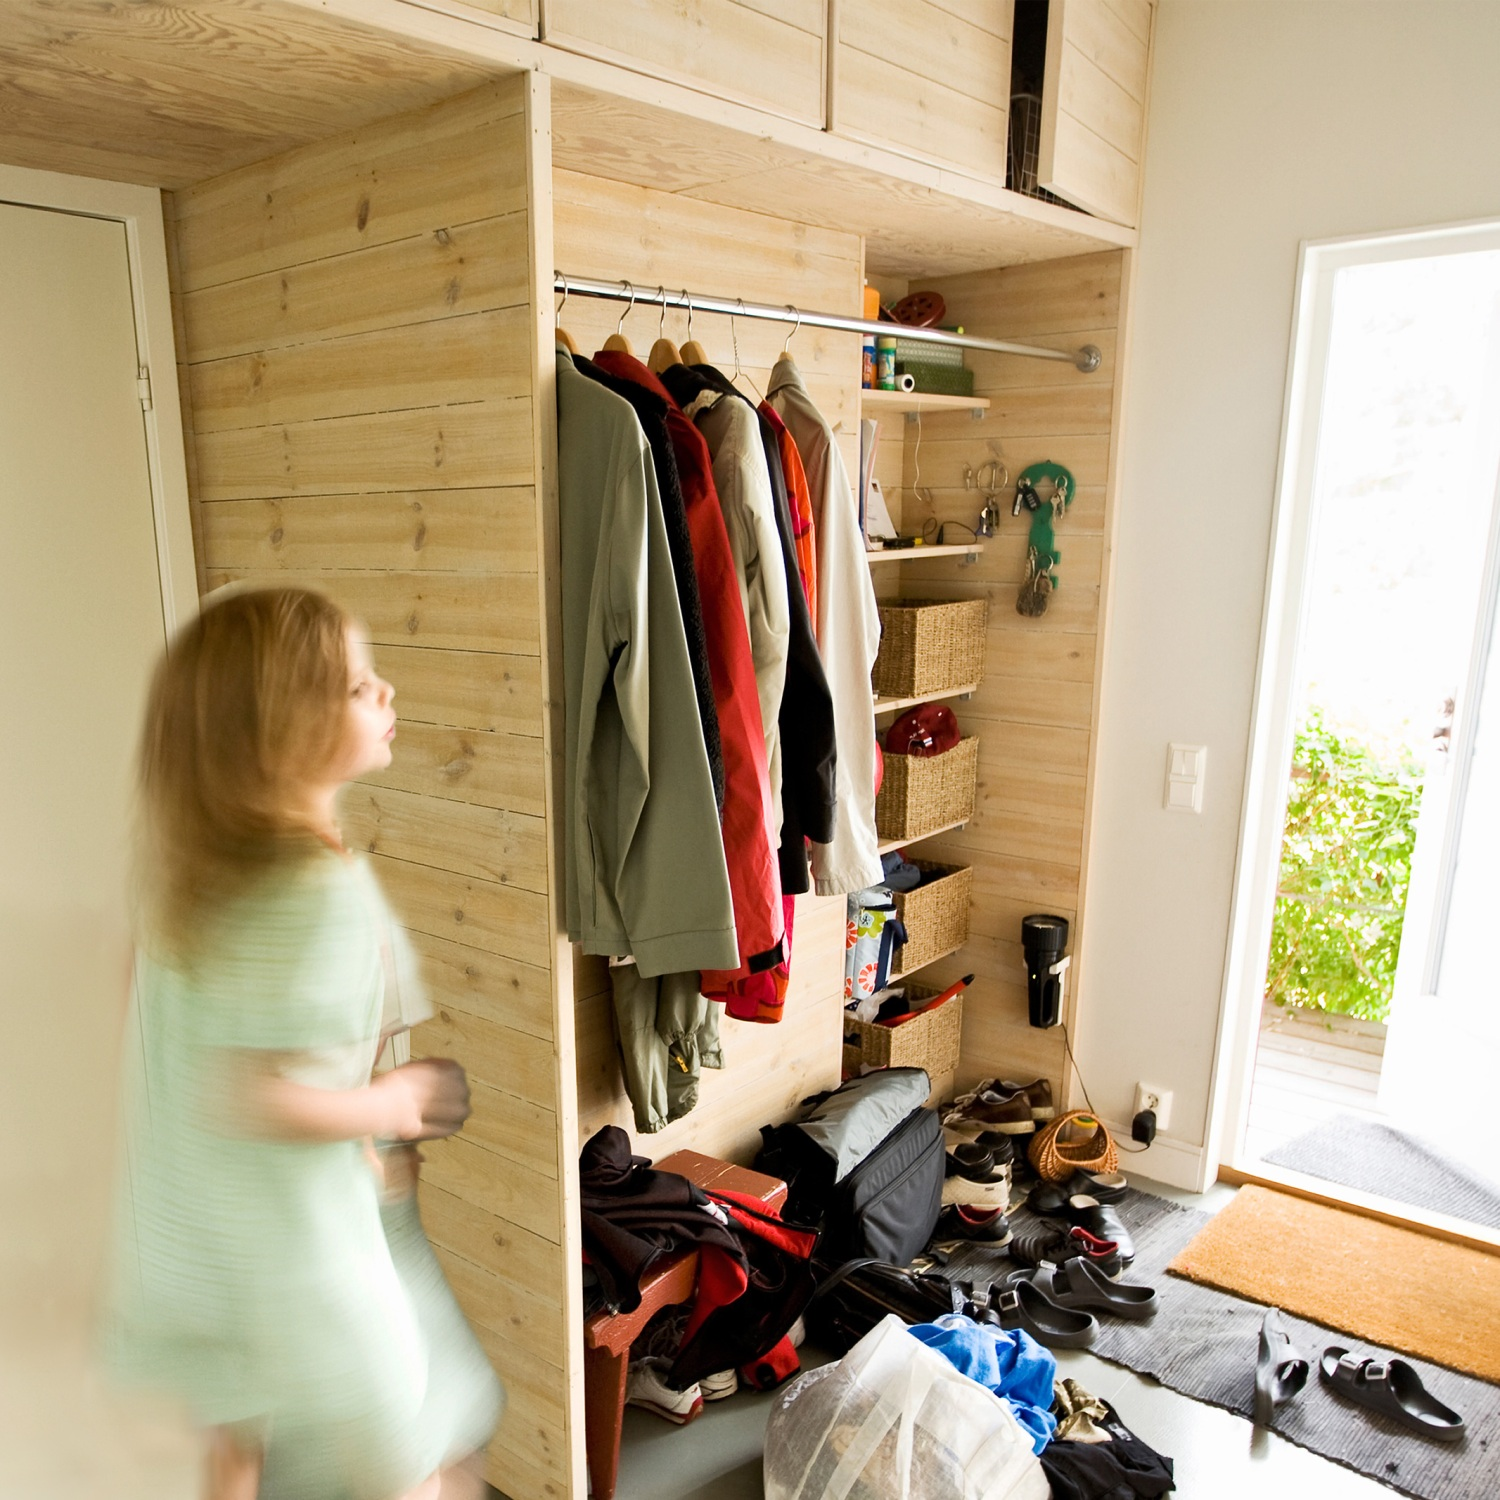 Girl running out of her front door past entryway storage